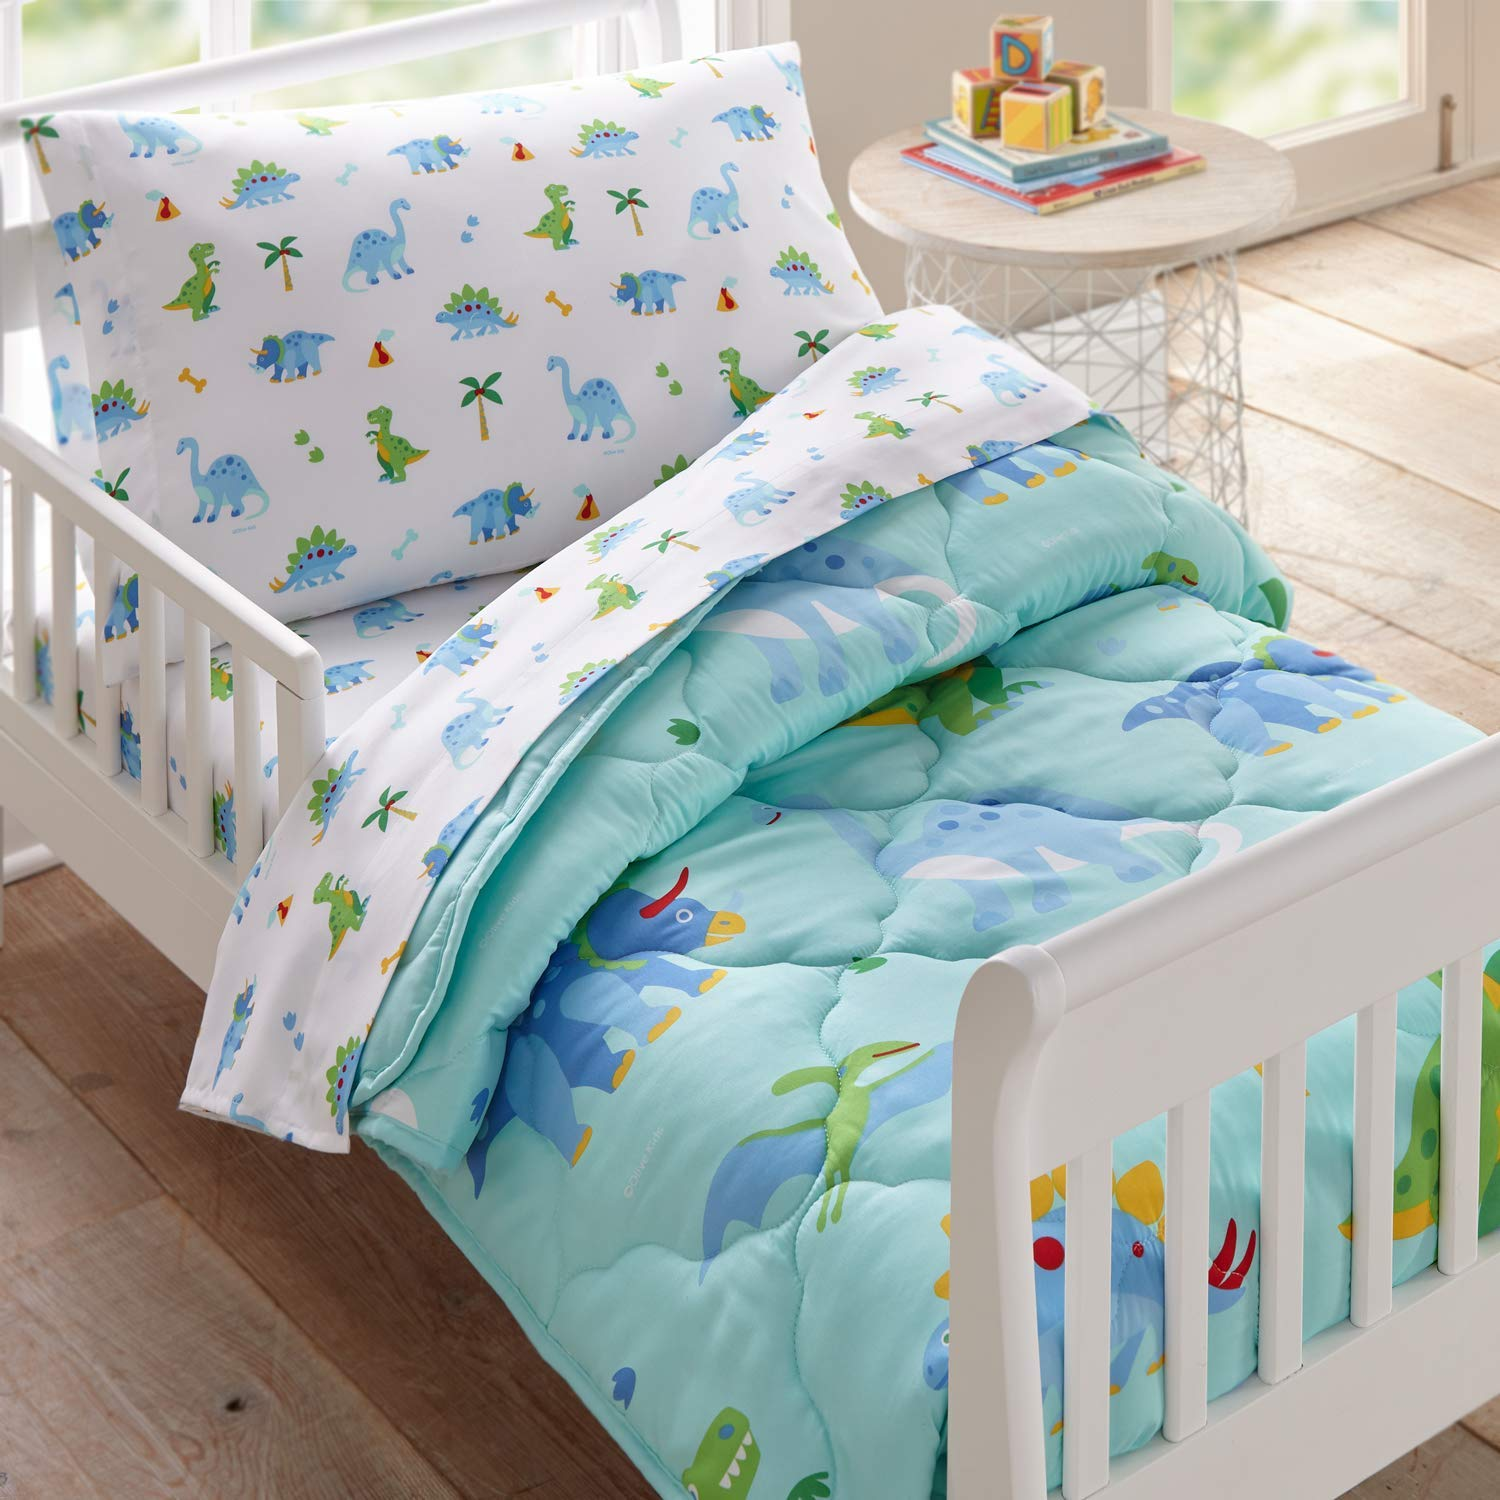 Wildkin 4 Piece Toddler Bed-in-A-Bag, 100% Microfiber Bedding Set, Includes Comforter, Flat Sheet, Fitted Sheet, and Pillowcase, Coordinates with Other Room Décor, Olive Kids Design – Dinosaur Land